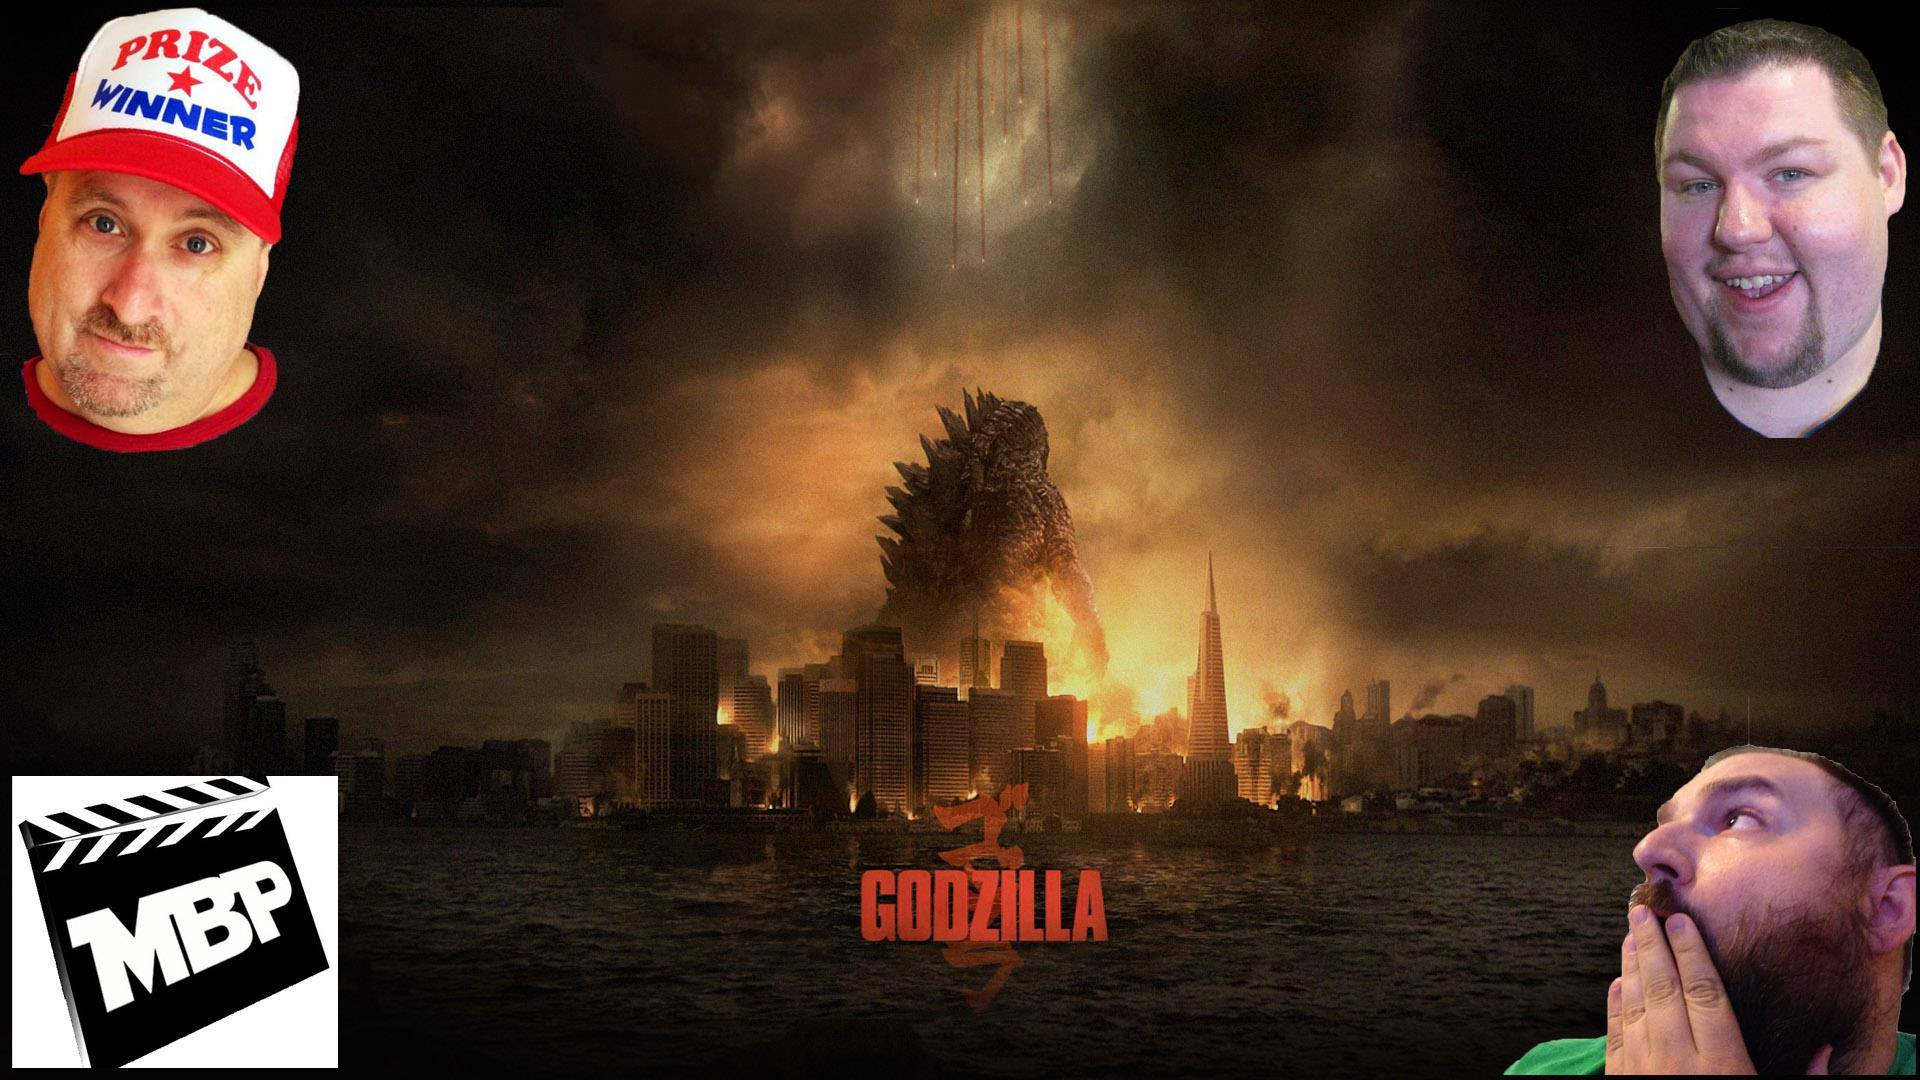 MBP e78 - 'Godzilla' (5/23/14)   RAWR!!!! This week, the Movie Bears Podcast reviews the latest update to the 'Godzilla' franchise. Click through to listen!